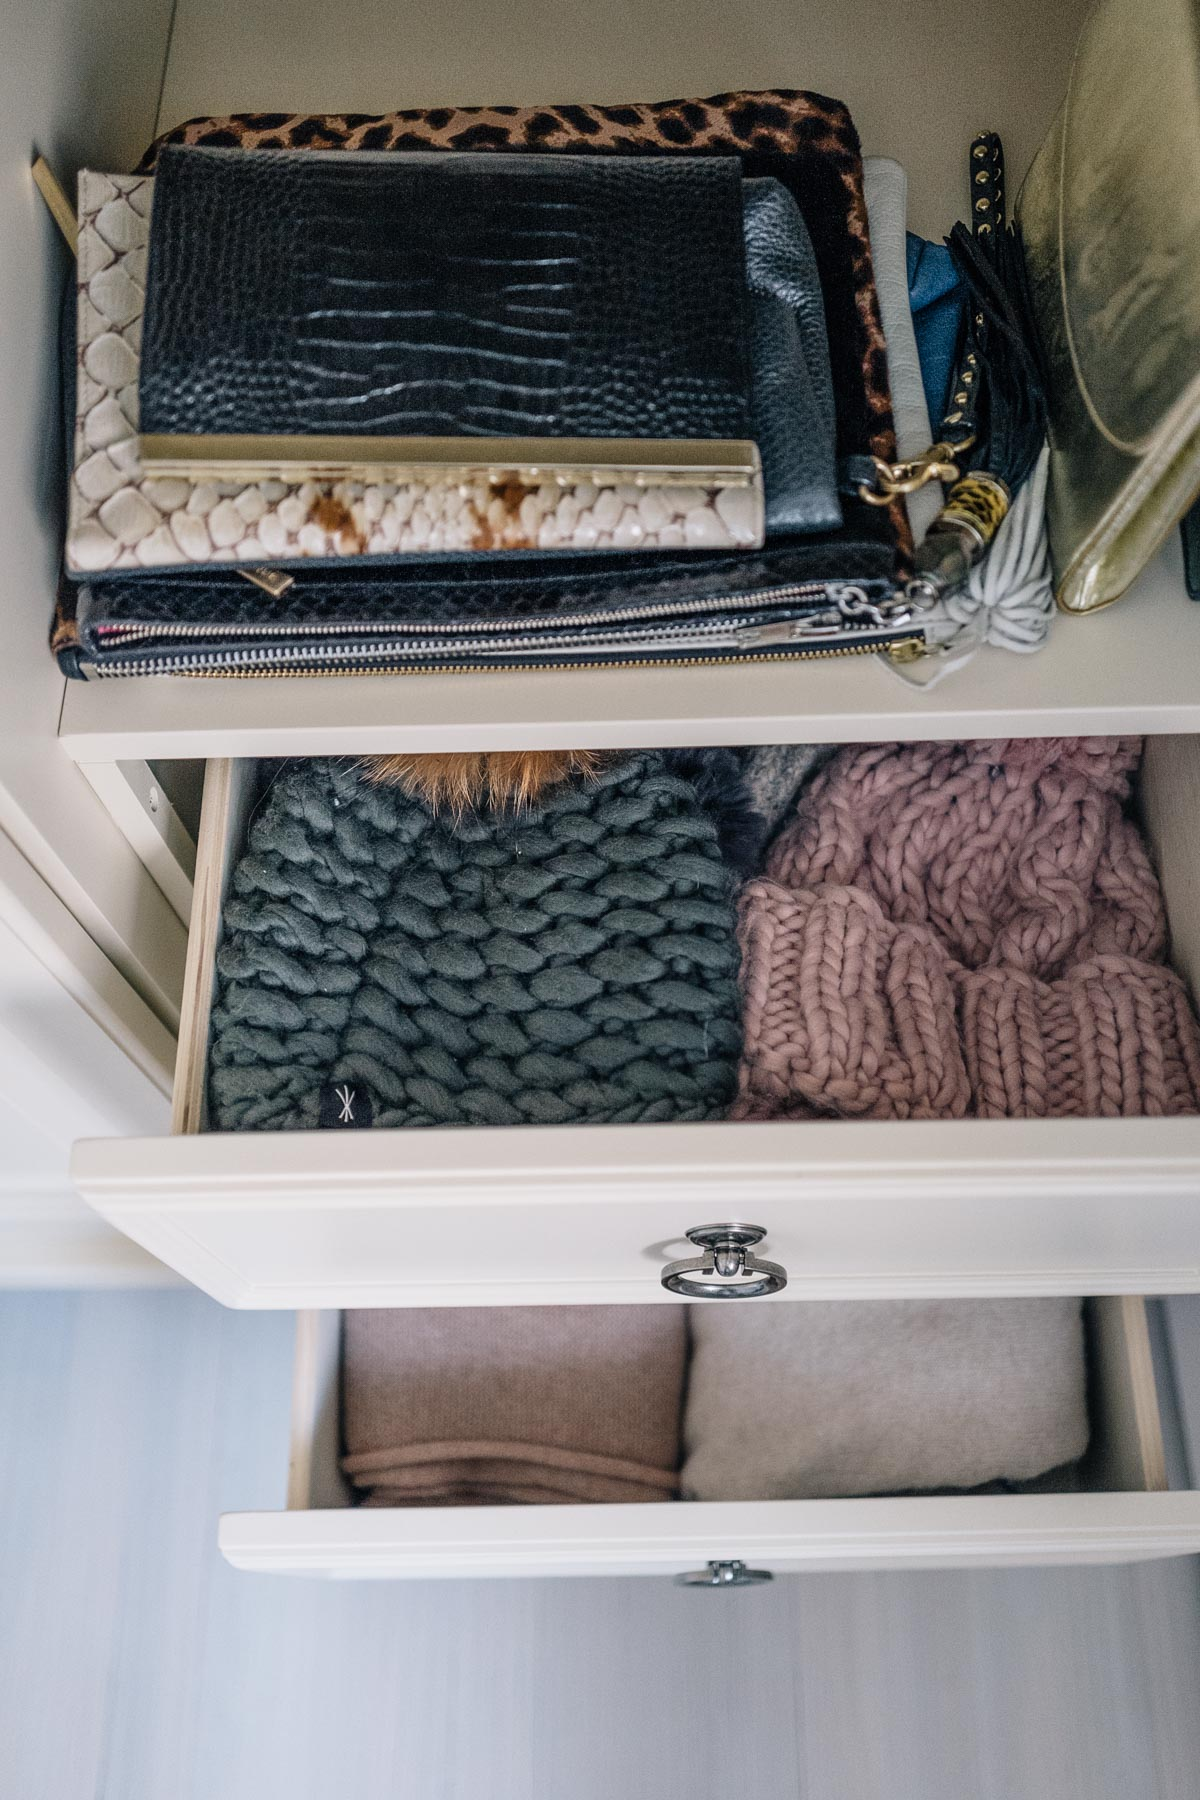 Jess Ann Kirby uses the Raymour & Flanigan wardrobe dresser to store winter hats and scarves